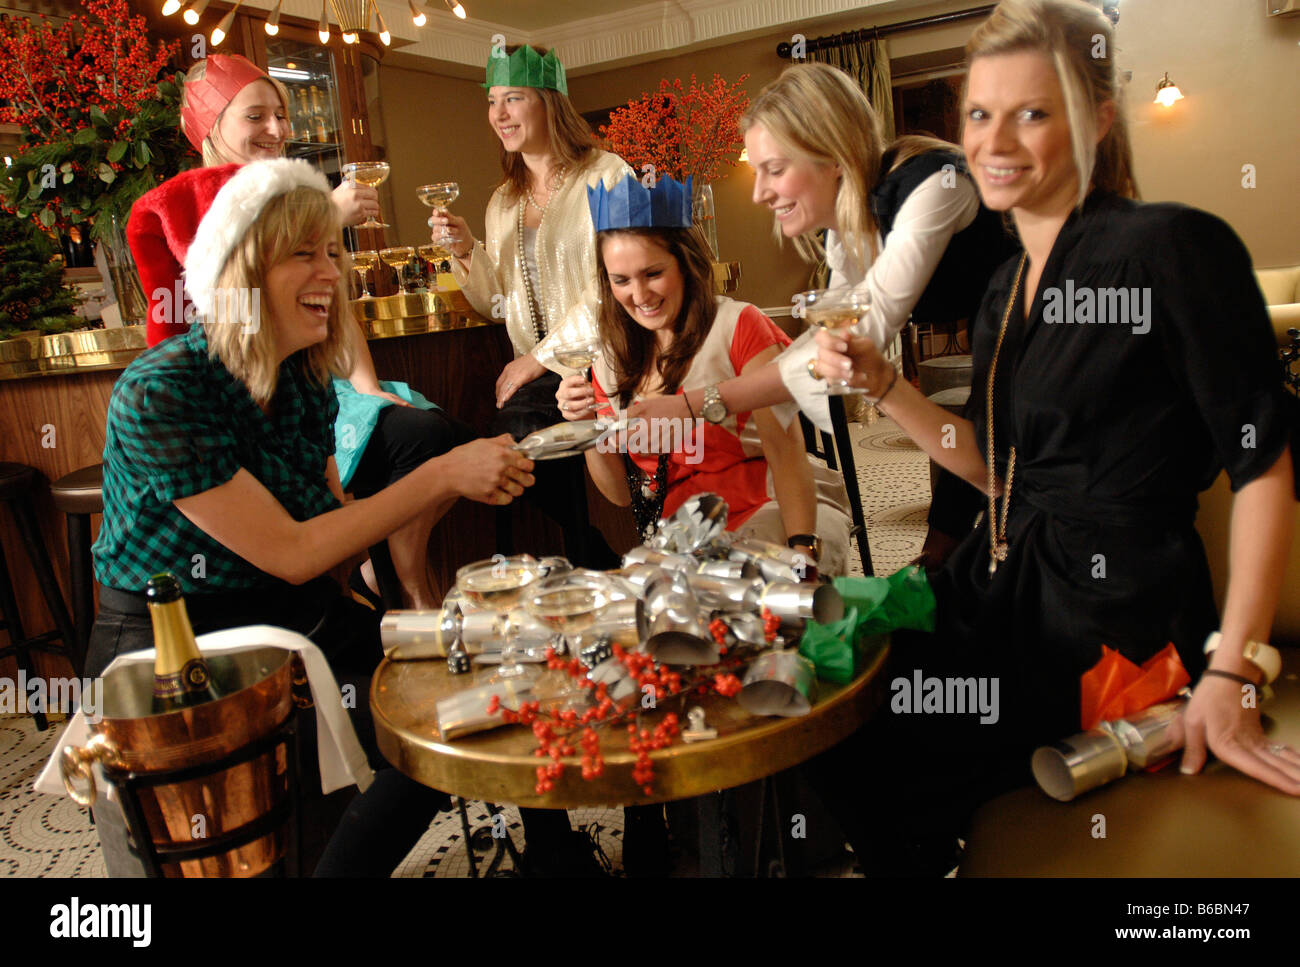 Christmas Office Party Ideas London Part - 49: All Girl Office Xmas Party At Kettneru0027s Bar And Restaurant London